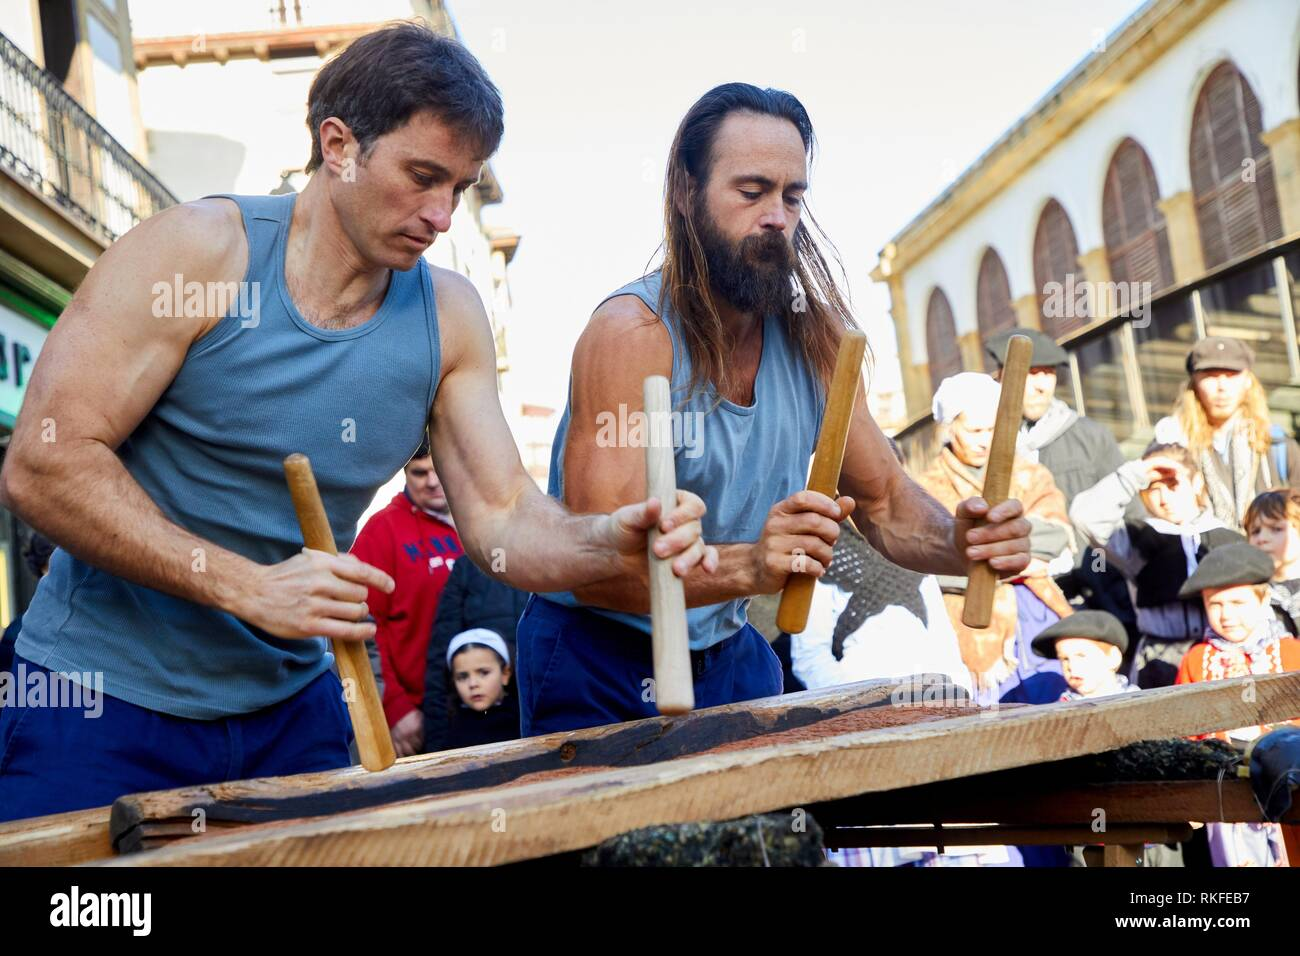 Txalaparta (Basque typical wooden percussion instrument), Feria de Santo Tomás, The feast of St. Thomas takes place on December 21. During this day - Stock Image